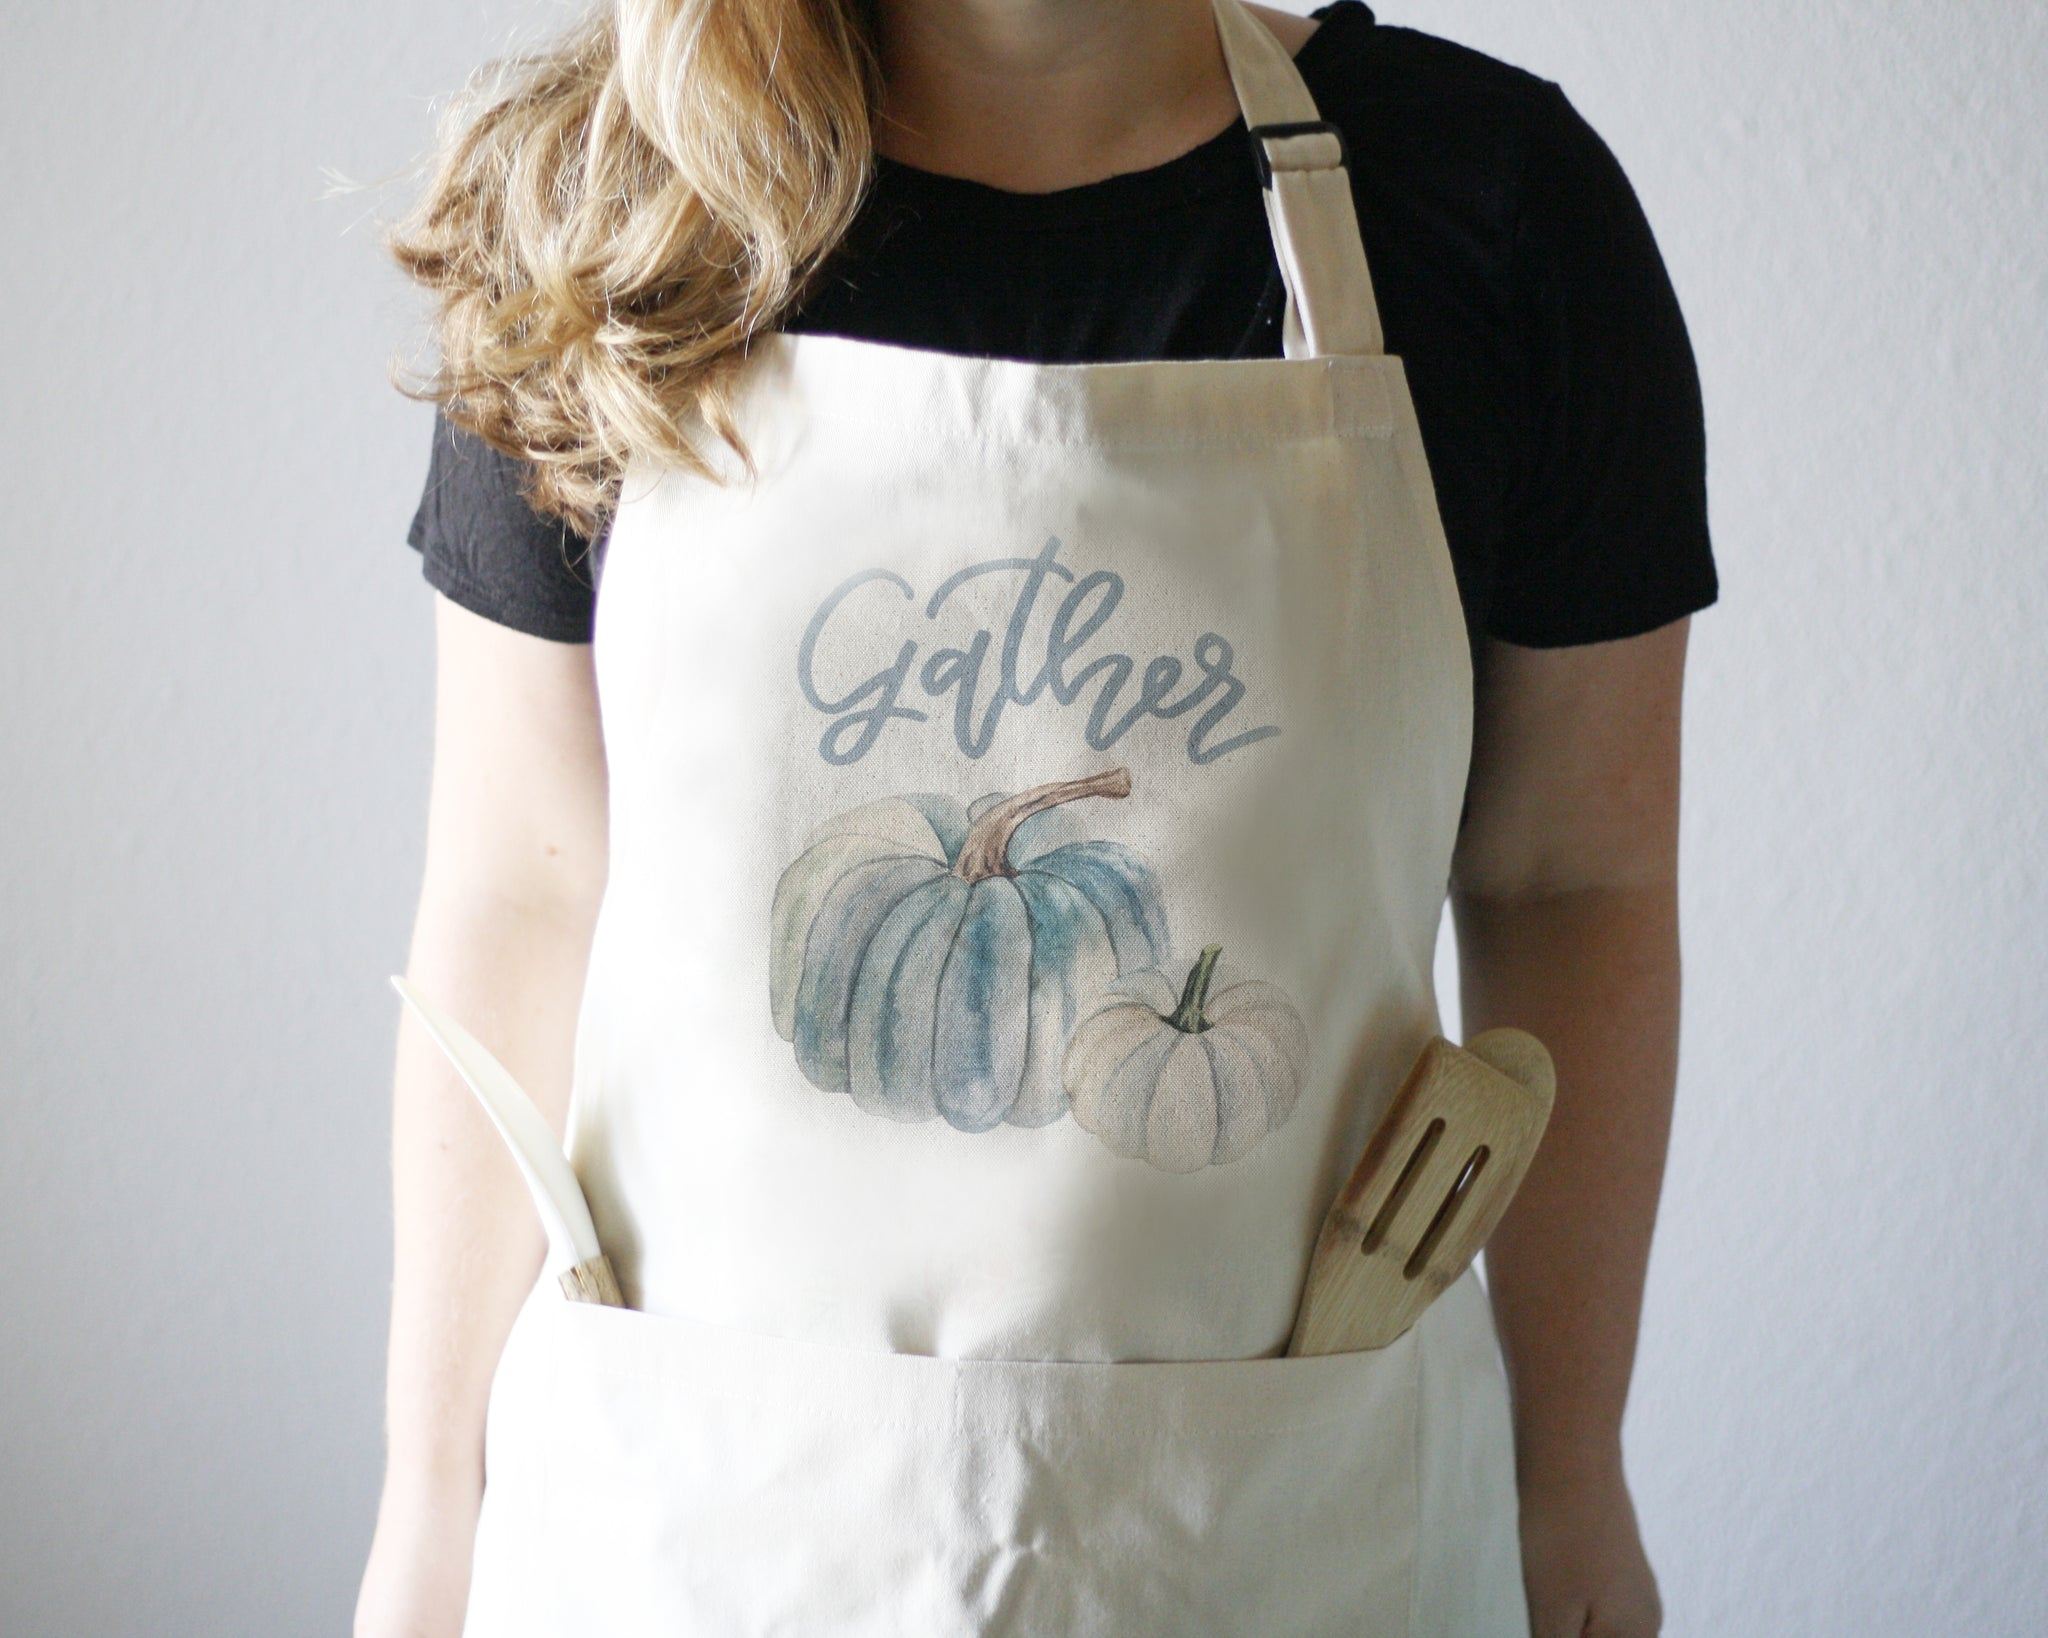 Gather Apron - Honey Brush Design